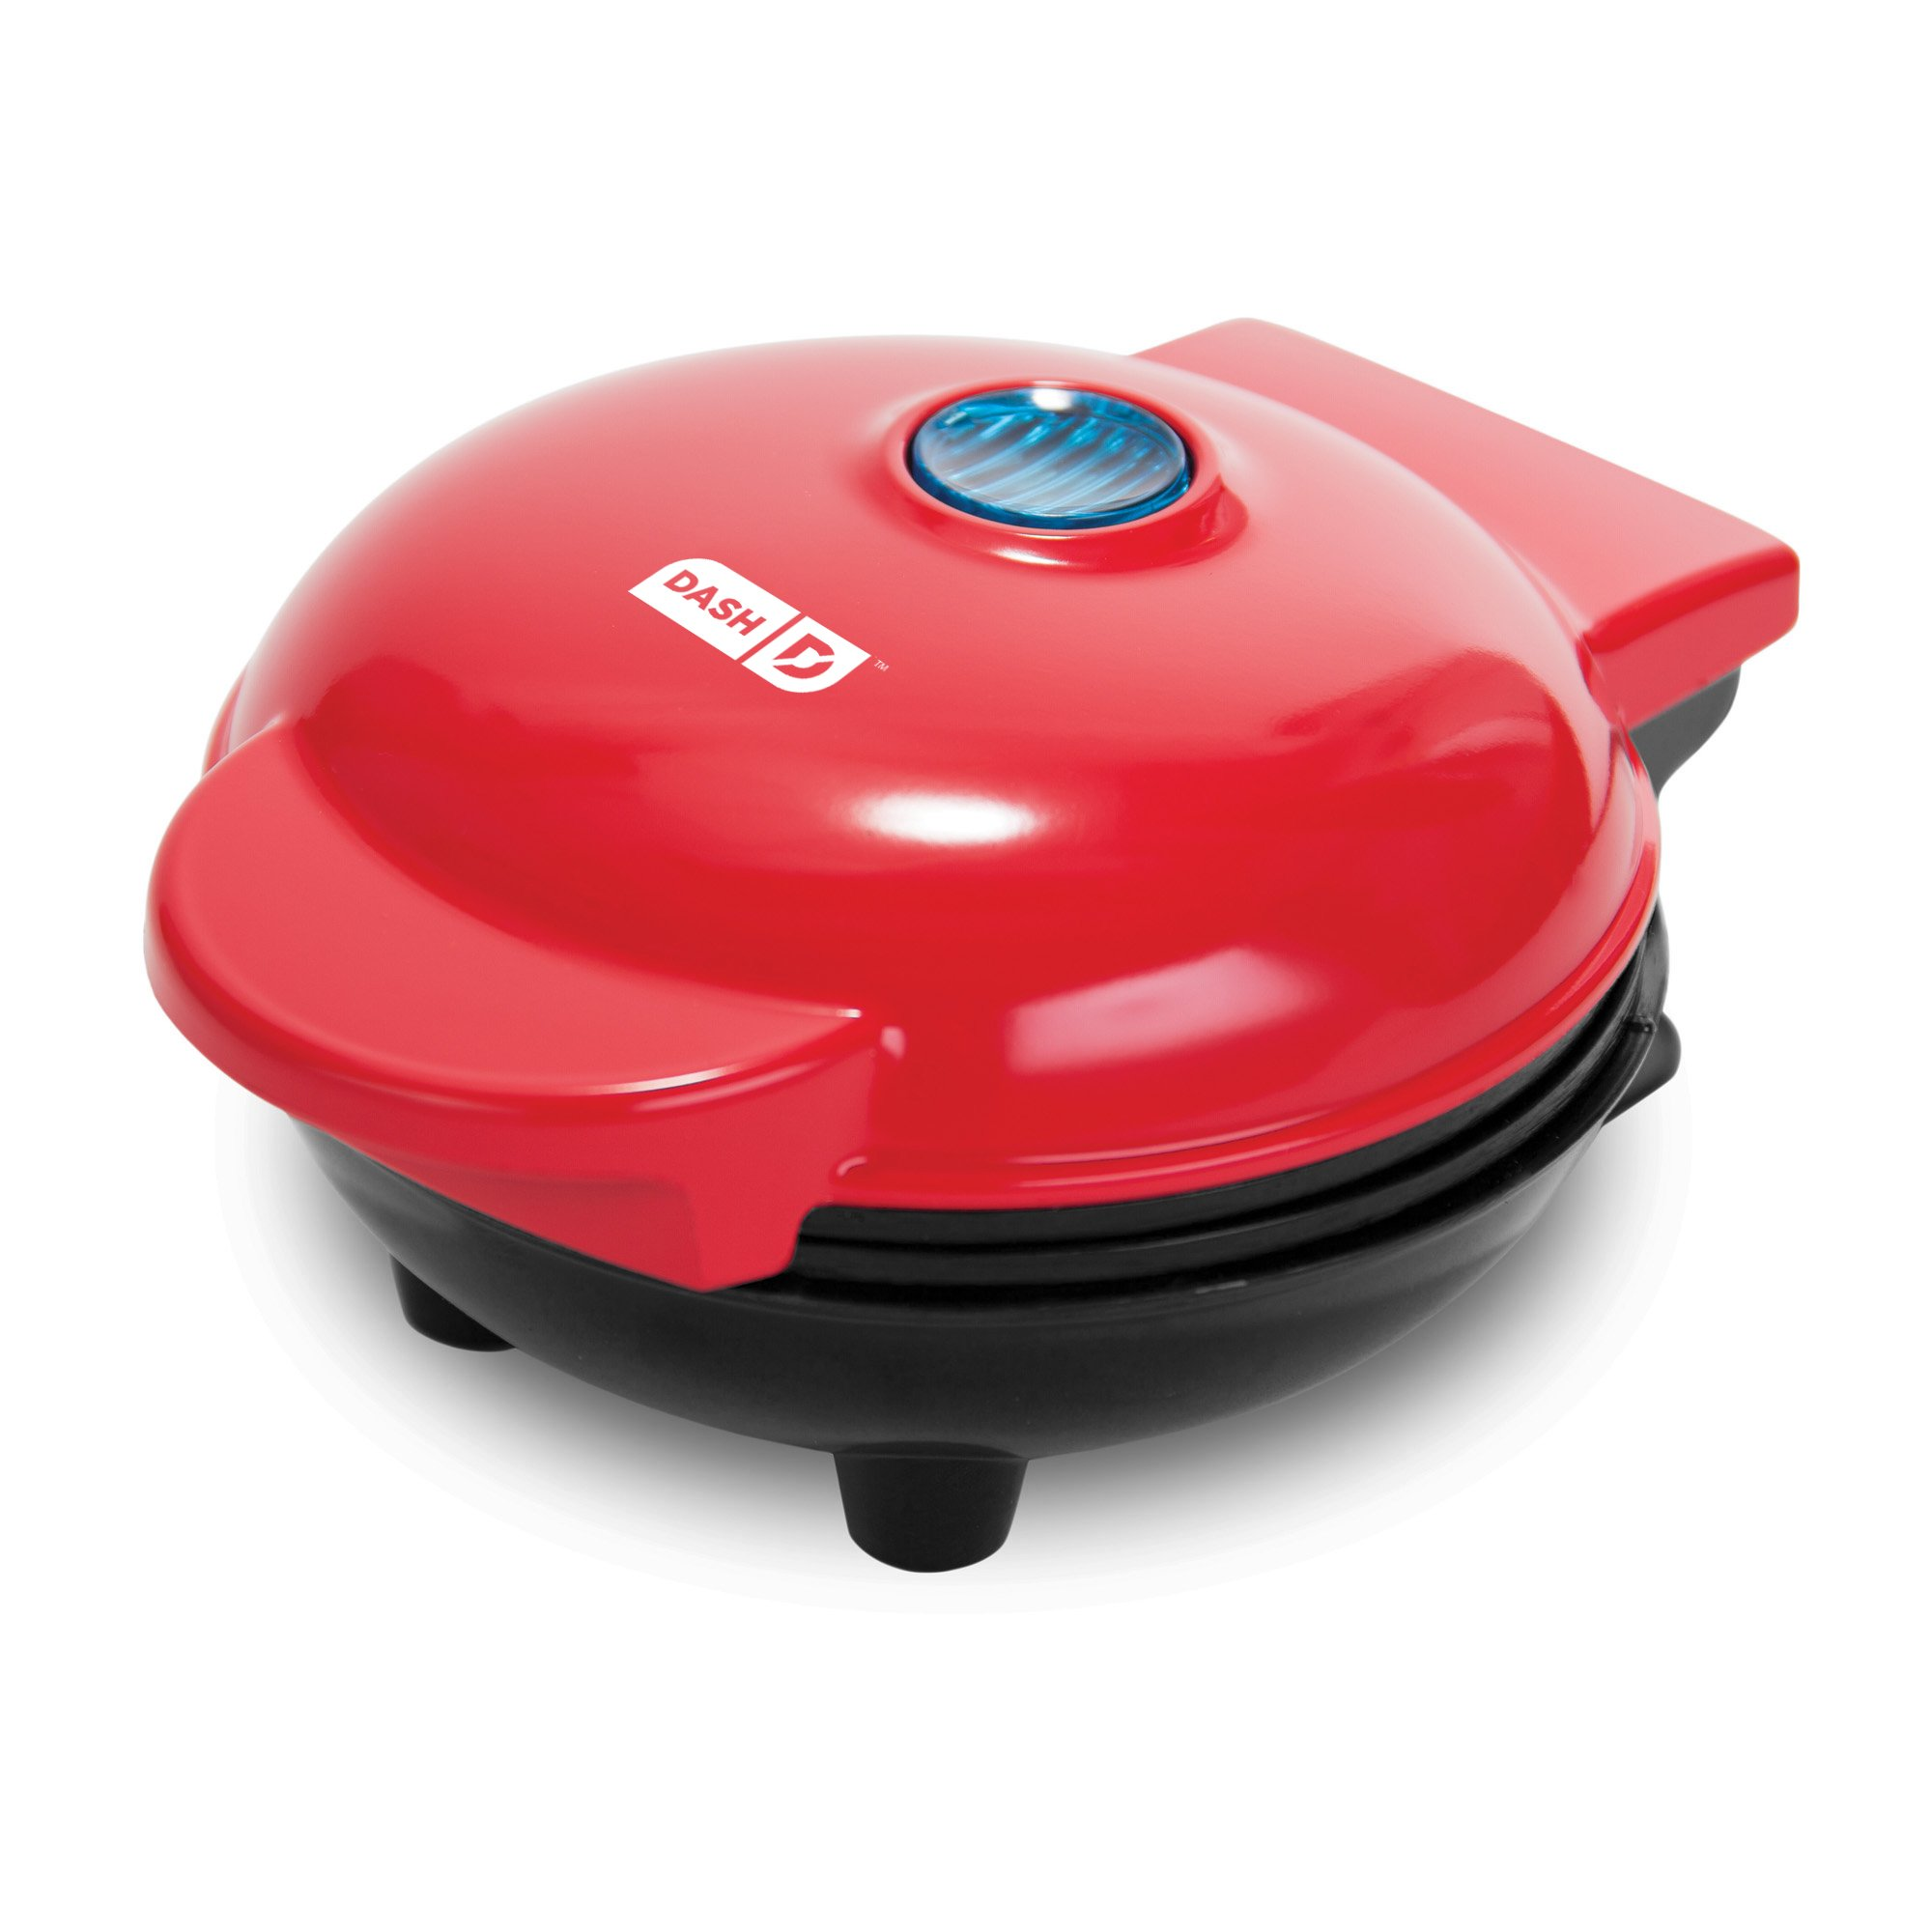 Dash DMG001RD Mini Maker Portable Grill Machine + Panini Press for Gourmet Burgers, Sandwiches, Chicken + Other On the Go Breakfast, Lunch, or Snacks with Recipe Guide - Red by DASH